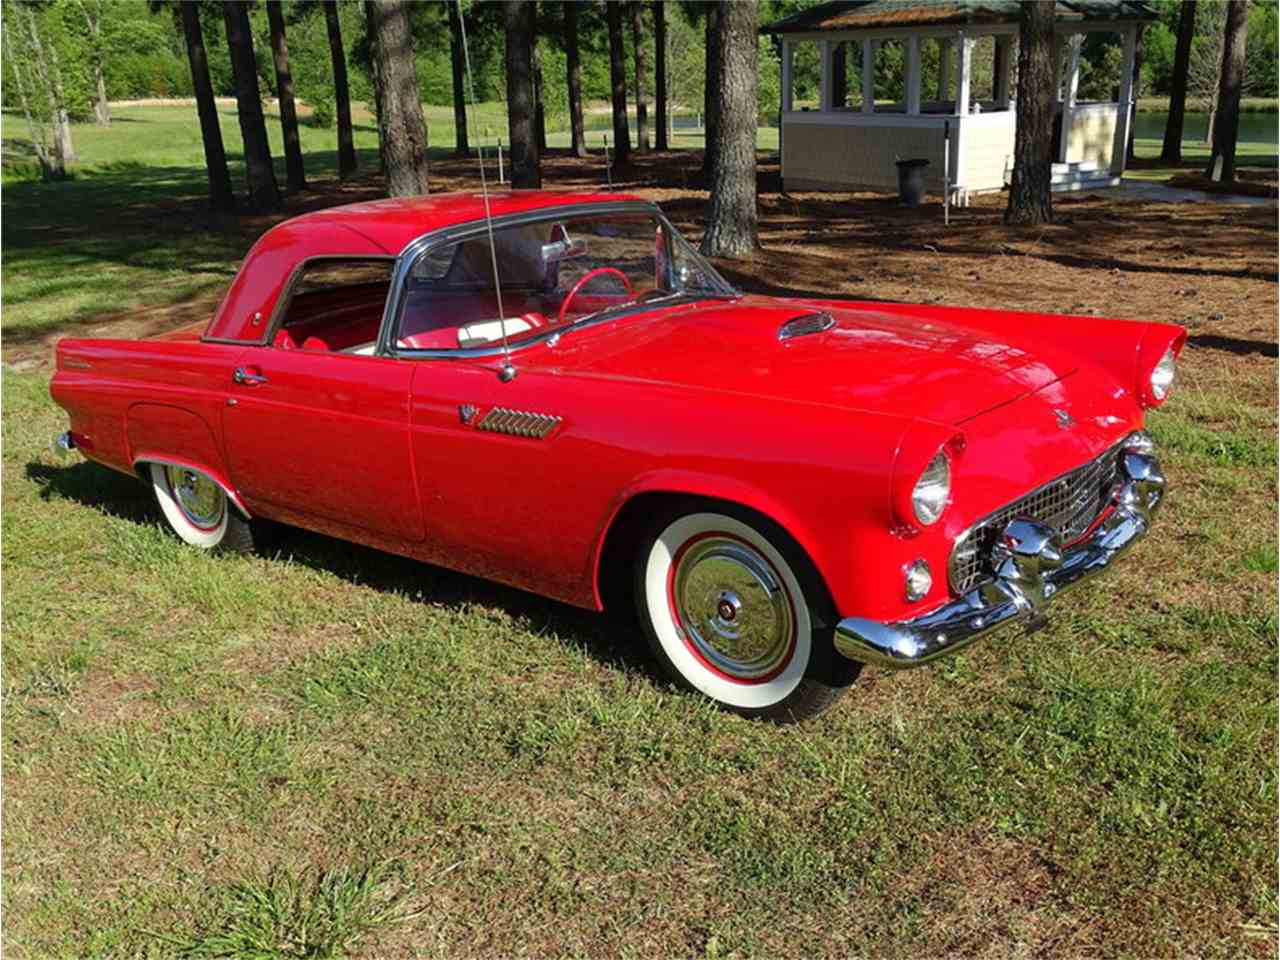 Large Picture of Classic '55 Ford Thunderbird located in Greensboro North Carolina Auction Vehicle Offered by GAA Classic Cars Auctions - NMA5